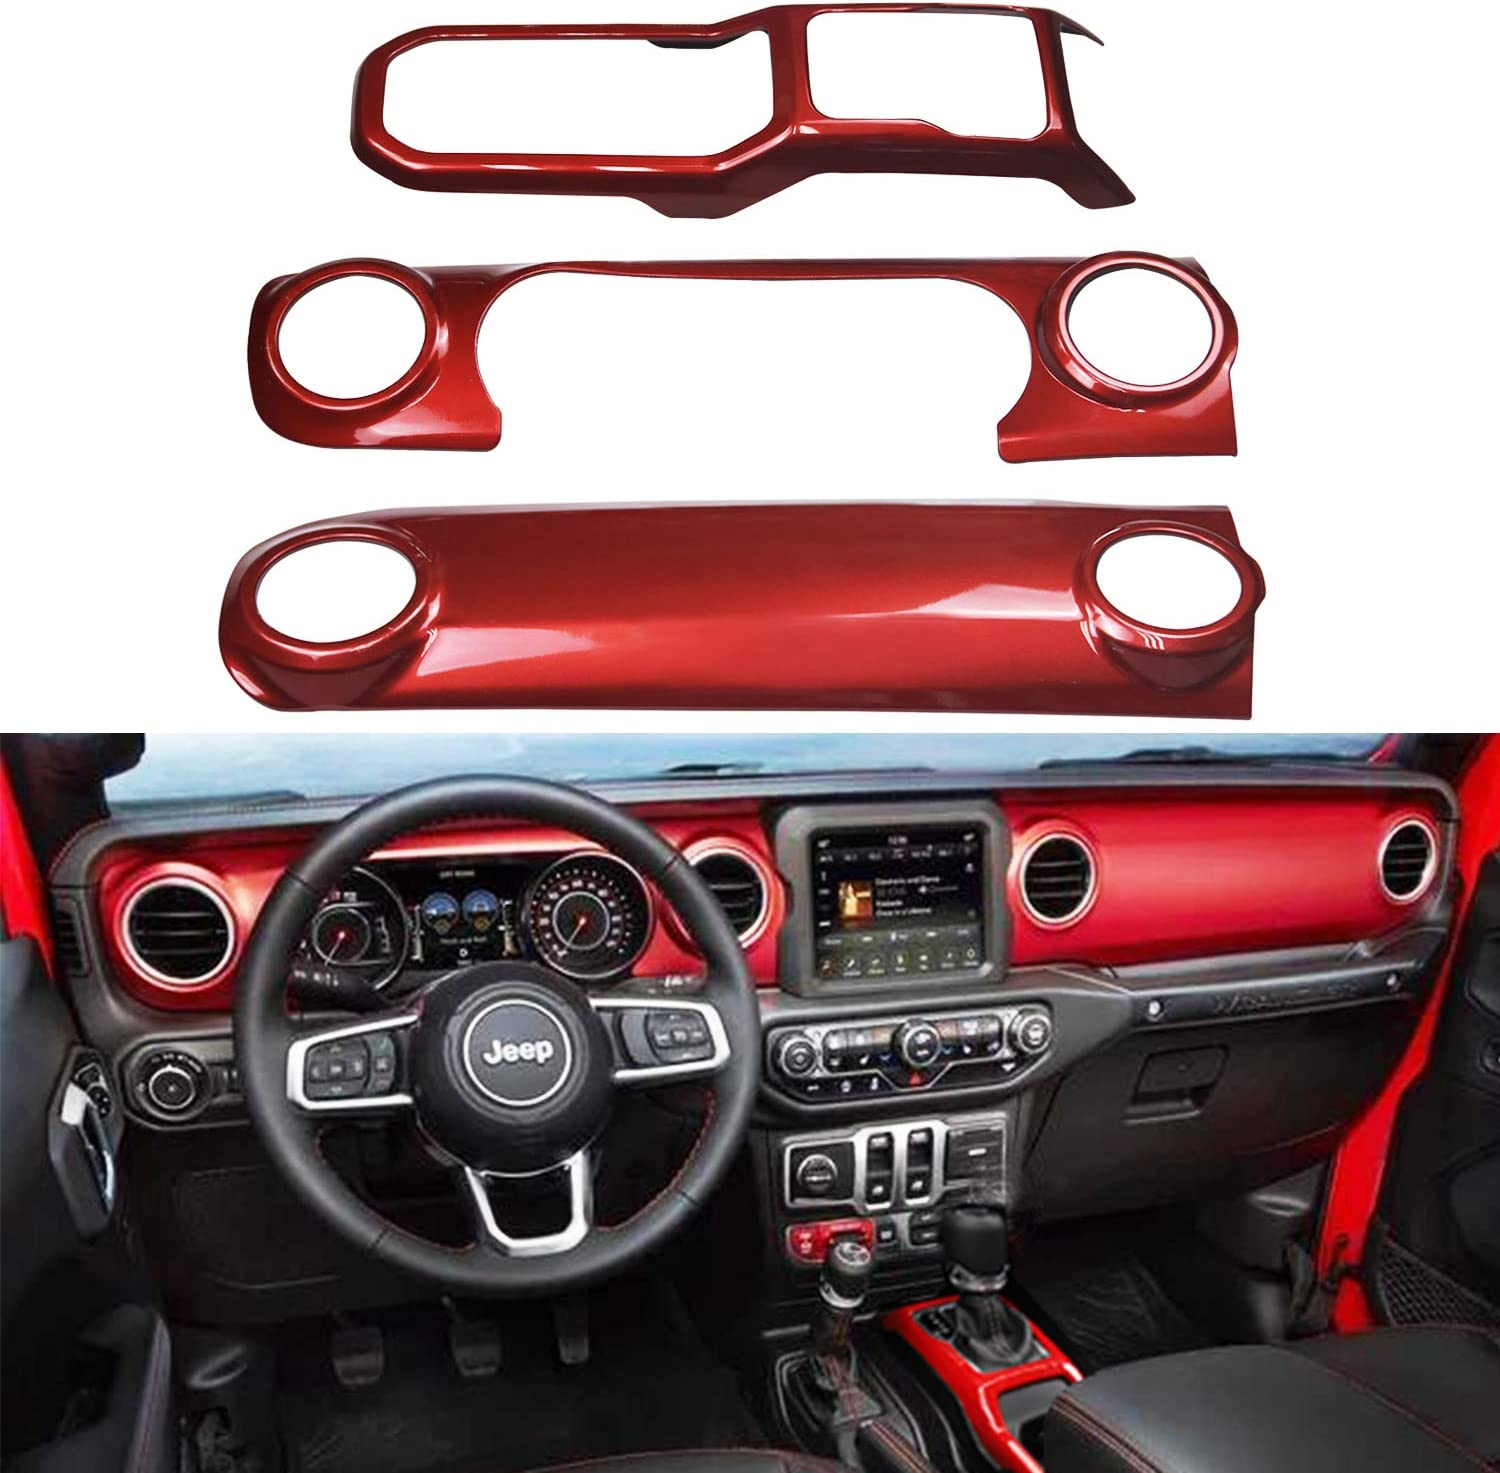 Bolaxin Red ABS Center Console Interior Trim Dashboard Decorative Cover for 2018 2019 Jeep Wrangler JL (Red)